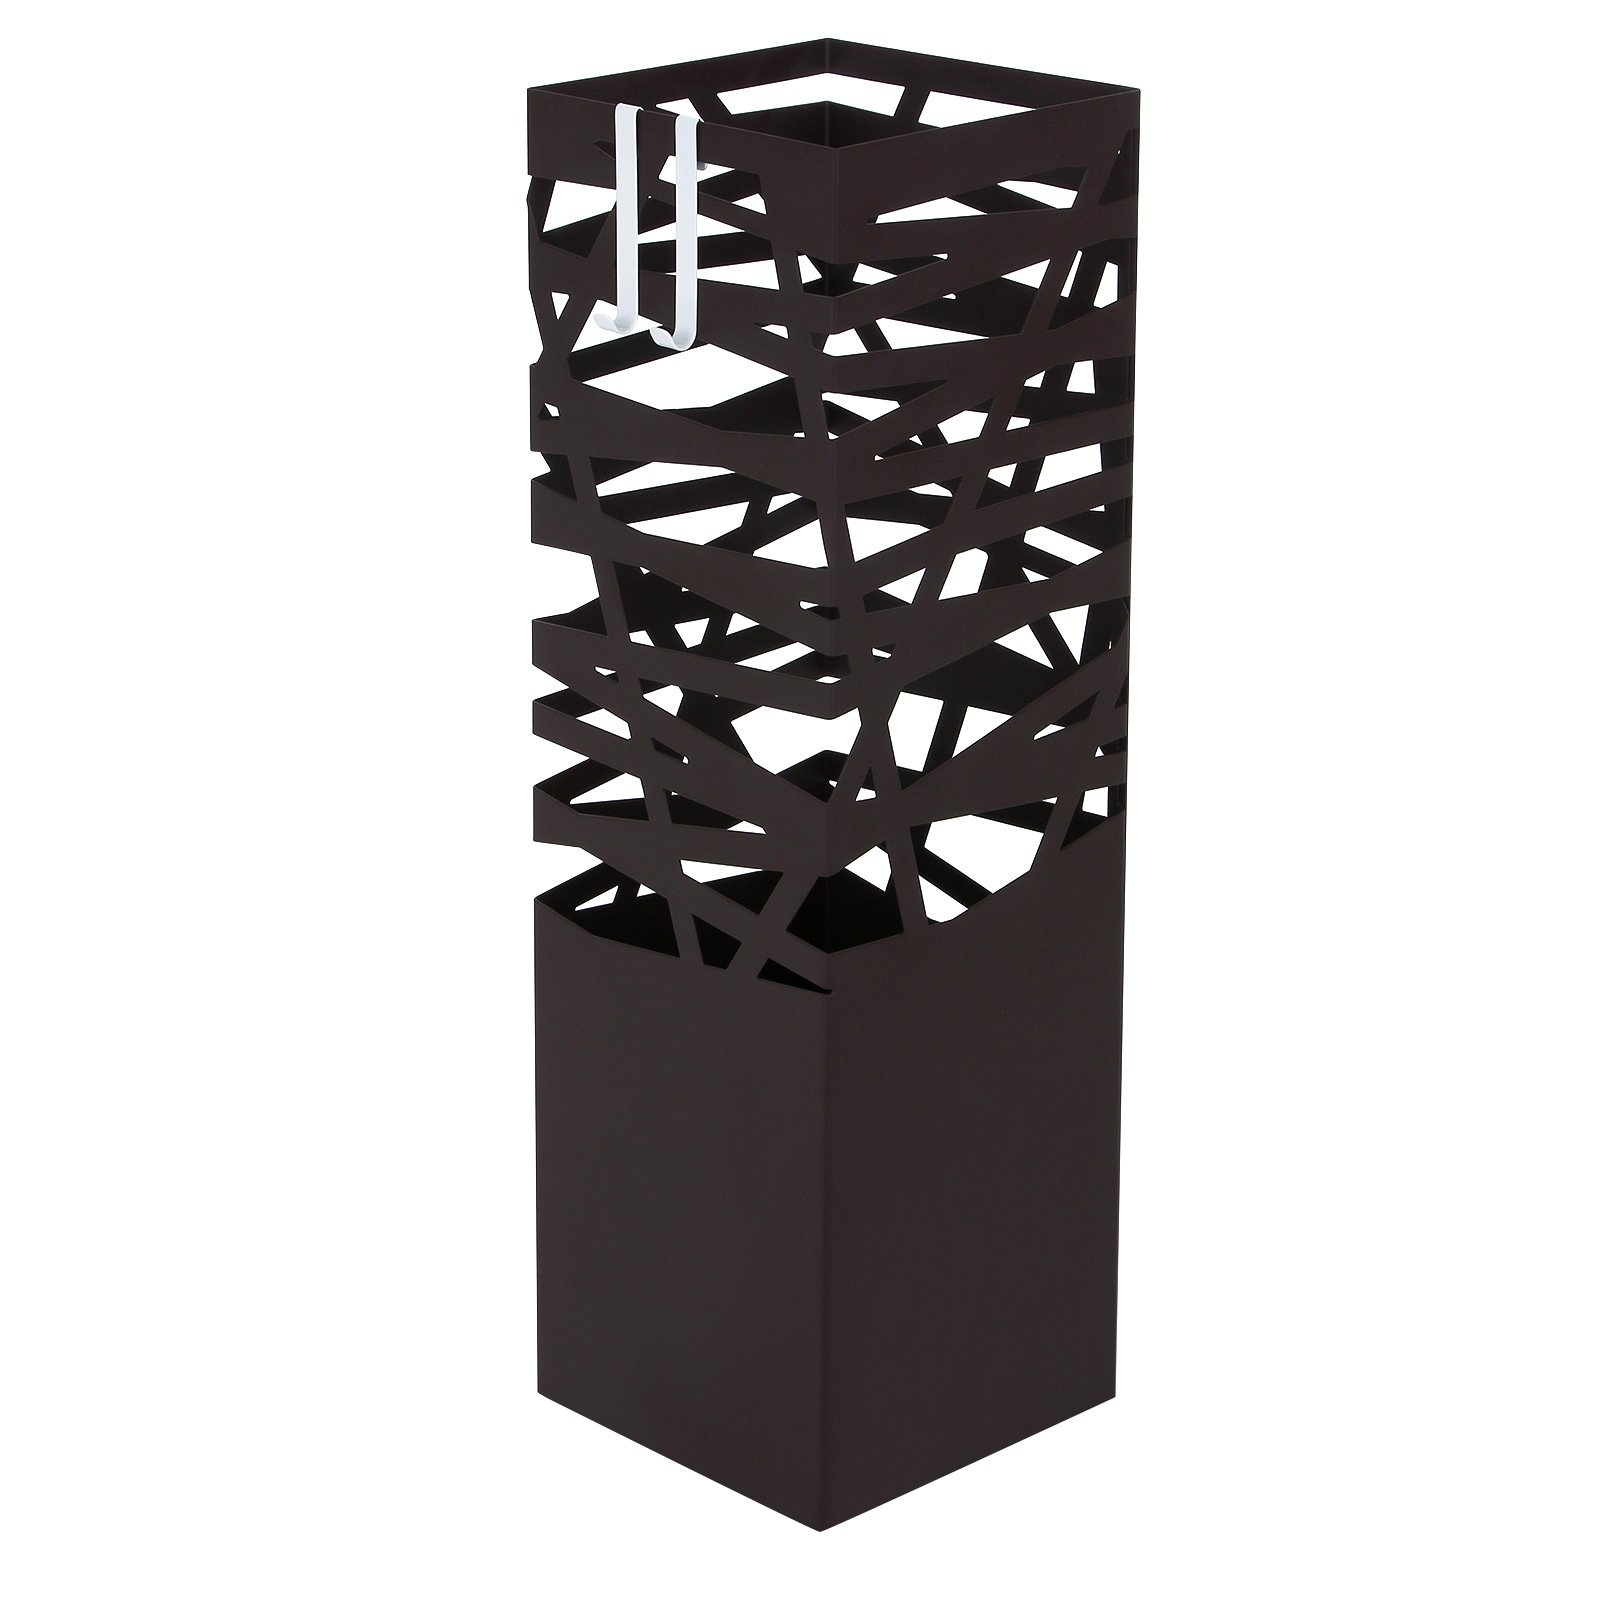 SONGMICS Modern Umbrella Stand Rack Free Standing for Canes/Walking Sticks Square with 2 Hooks Metal Brown ULUC47Z